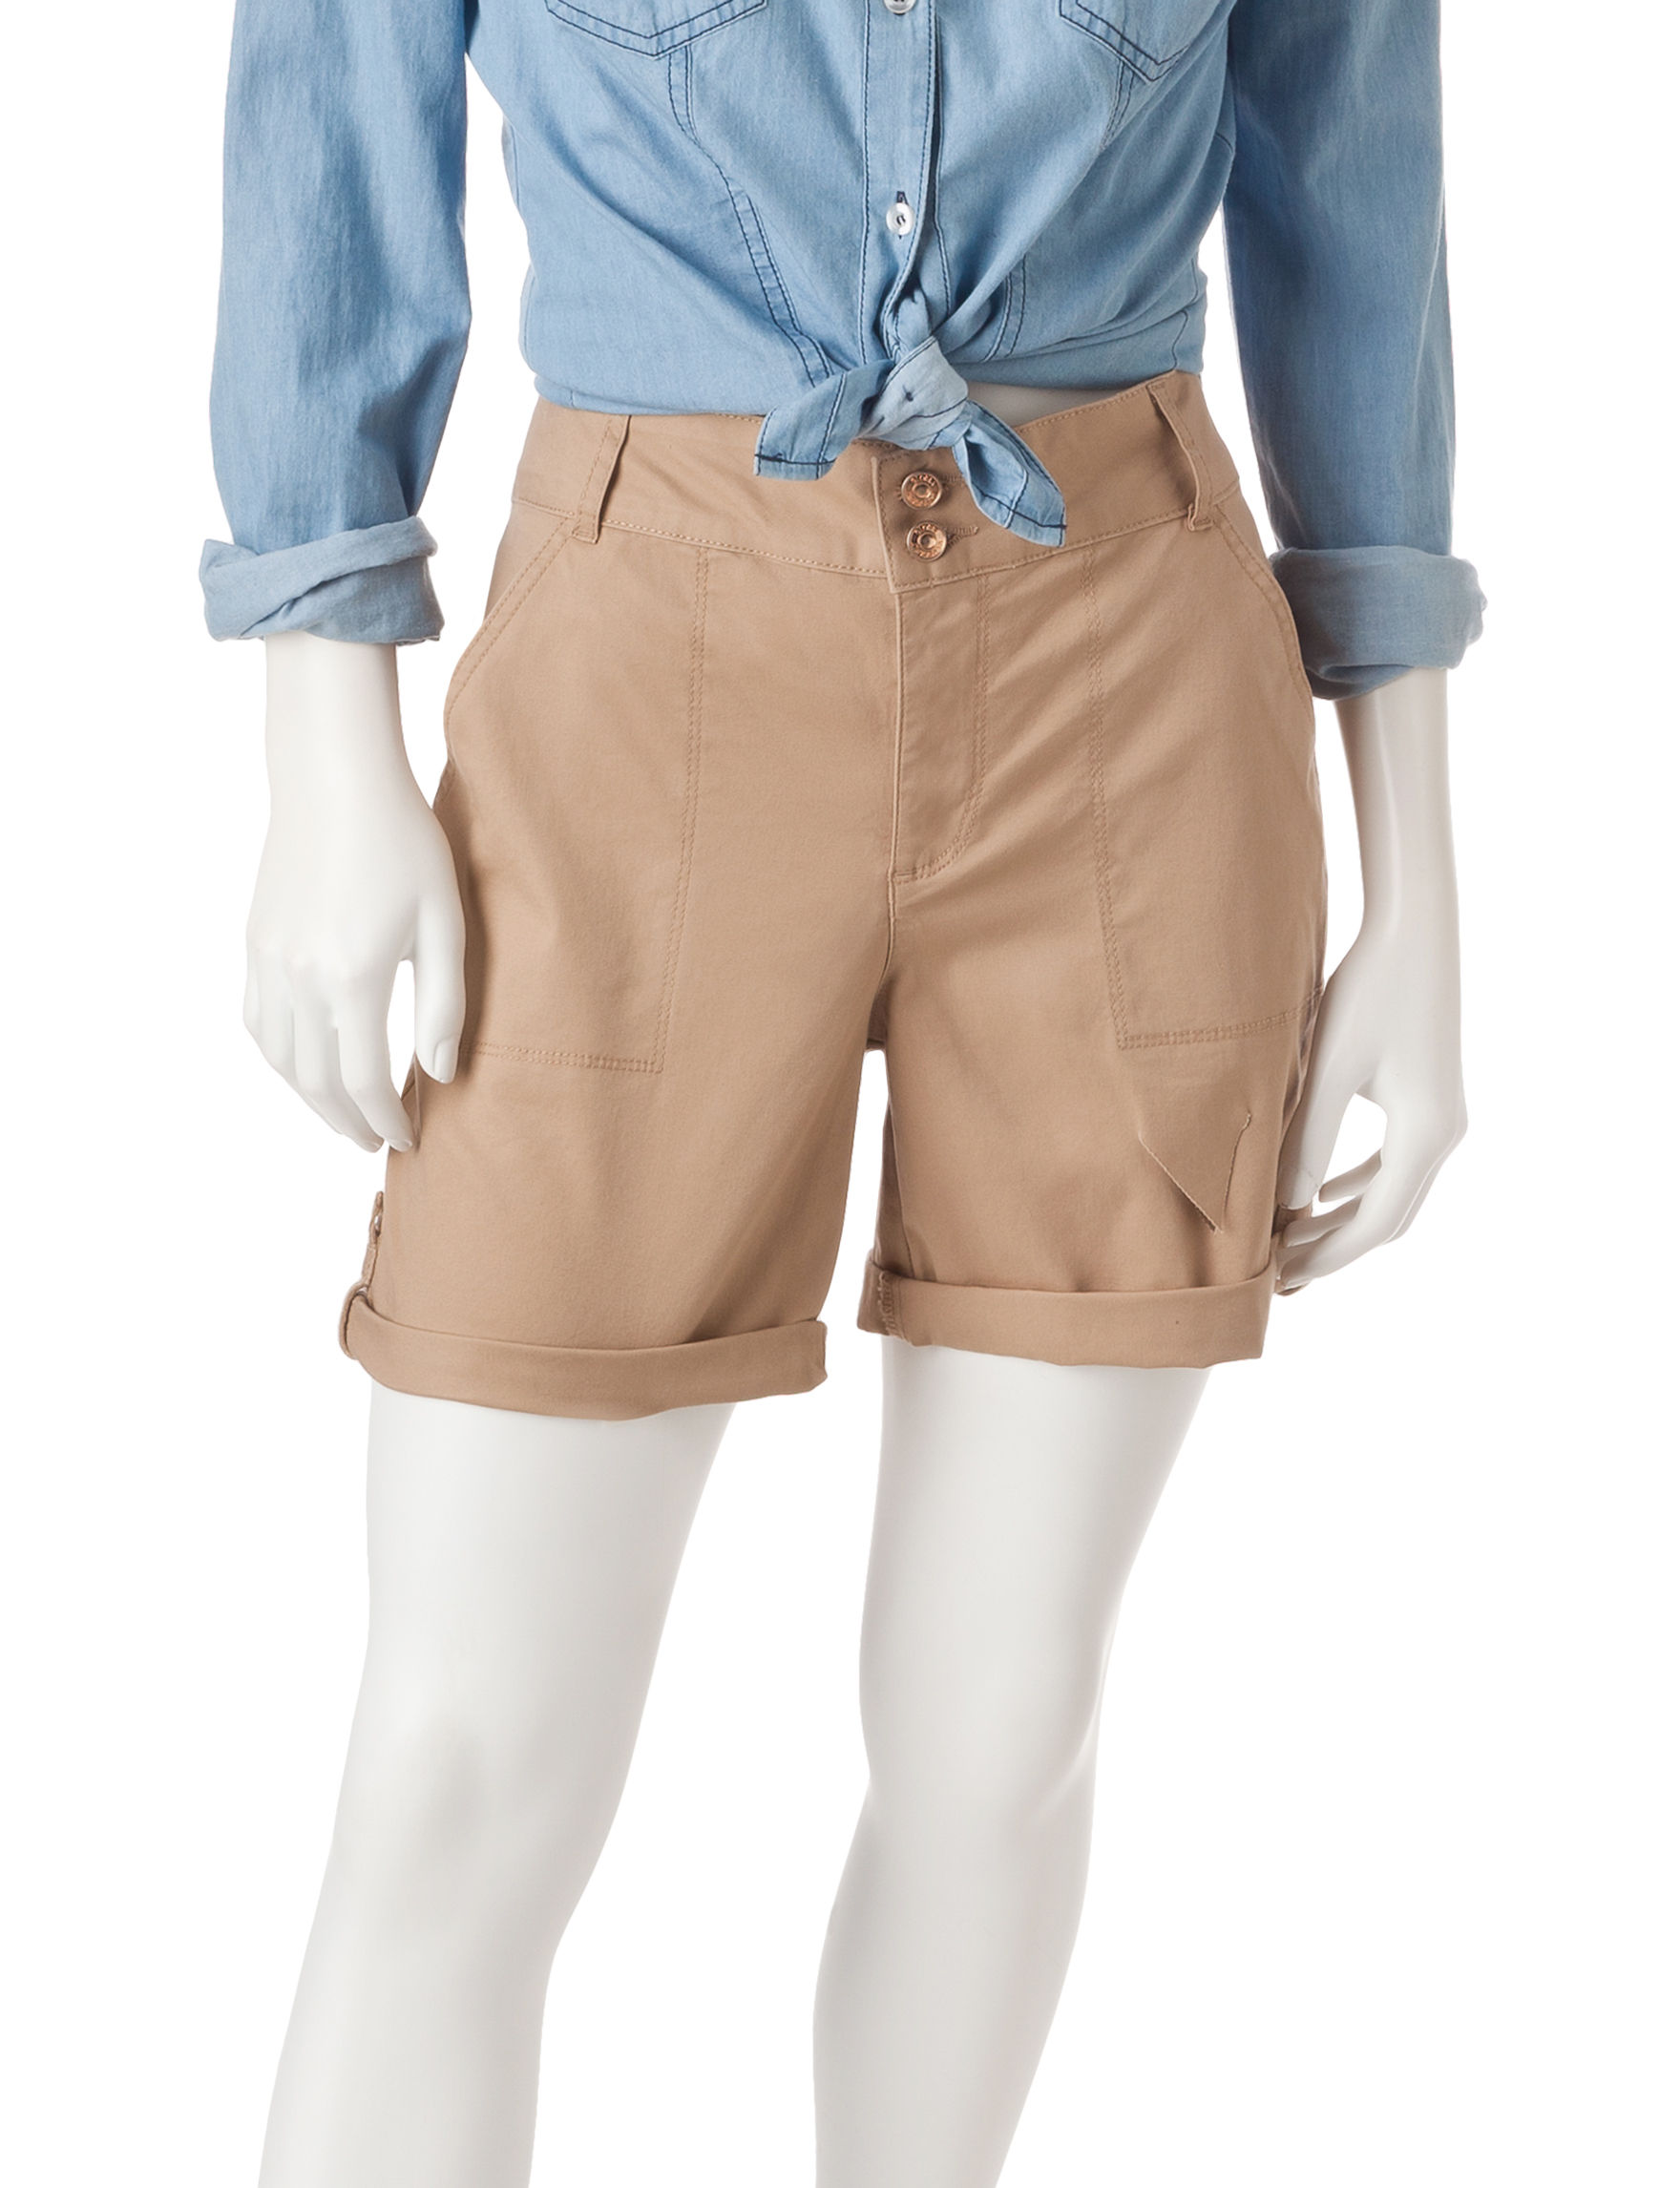 Gloria Vanderbilt Beige/Khaki Denim Shorts